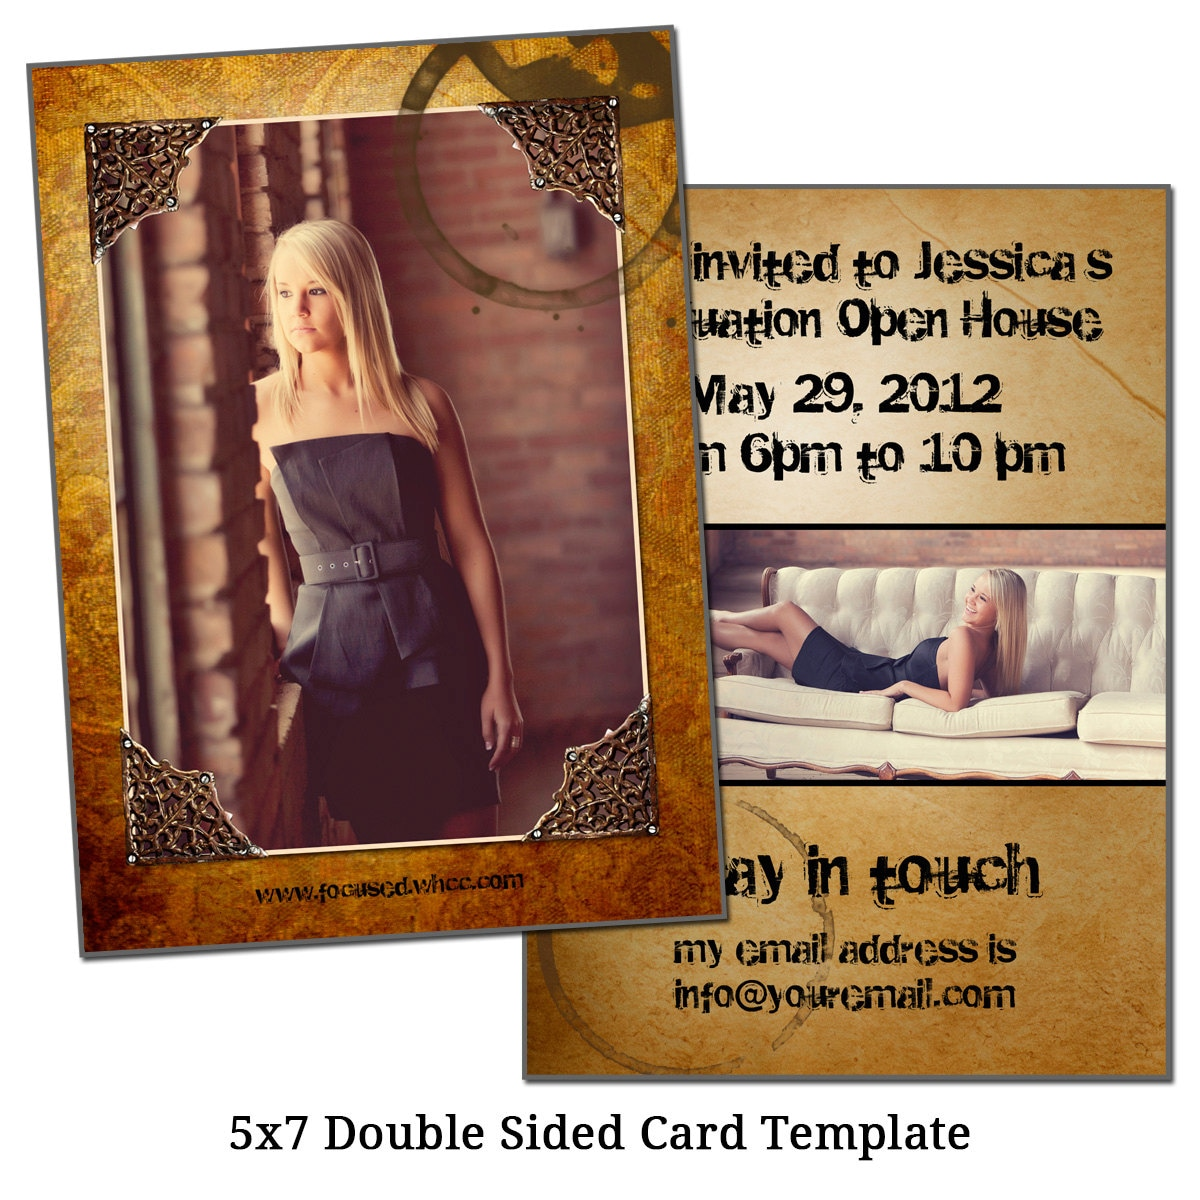 5x7 double sided card template framed future by vgallerydesigns. Black Bedroom Furniture Sets. Home Design Ideas